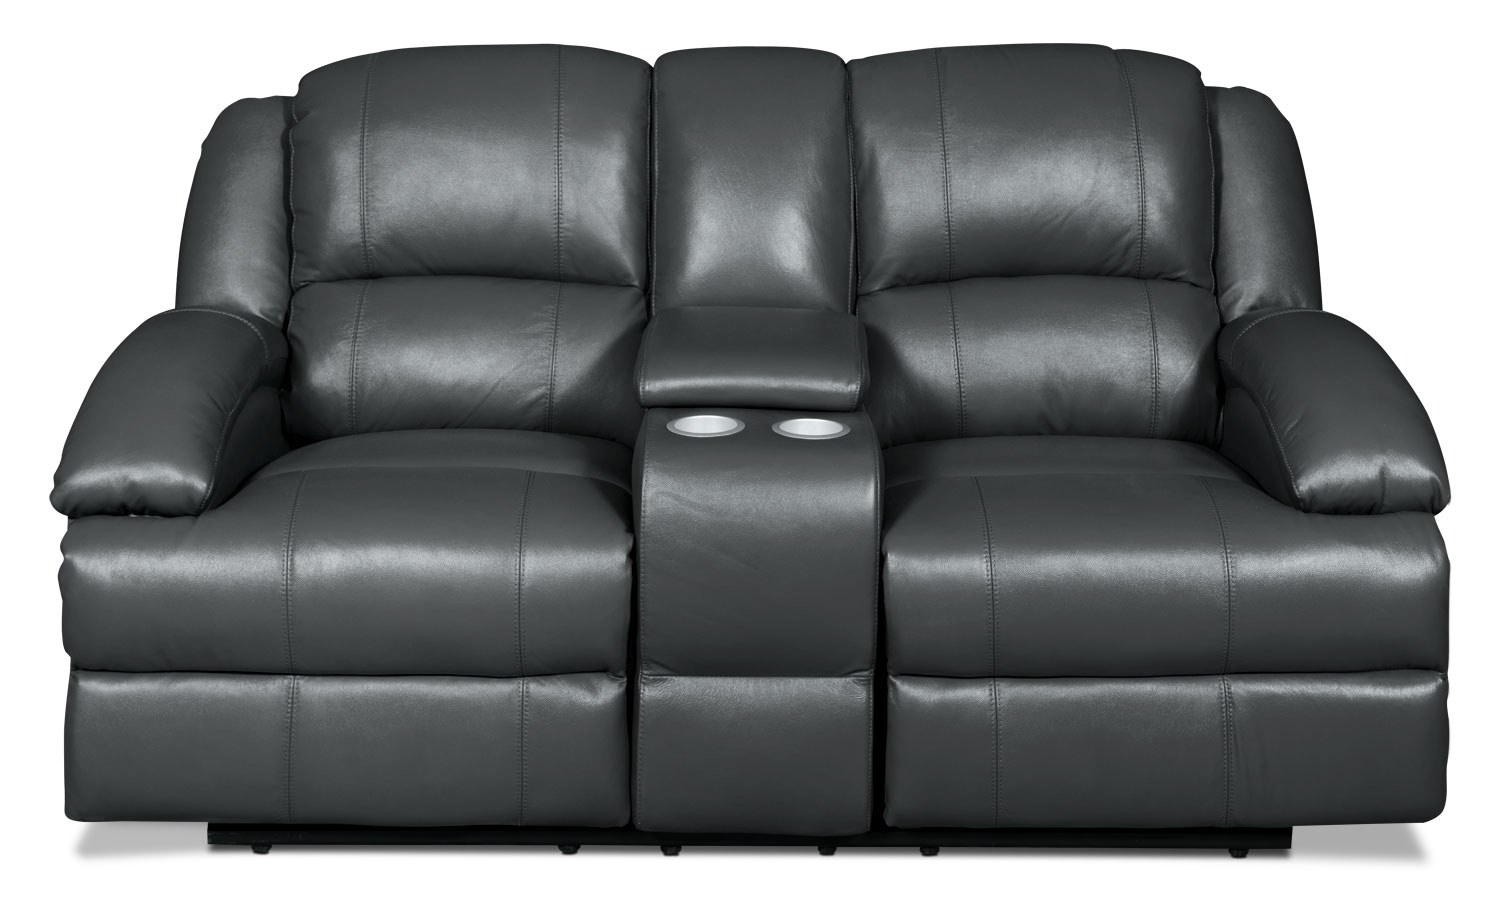 Living Room Furniture - Luka Genuine Leather Reclining Loveseat with Console - Grey